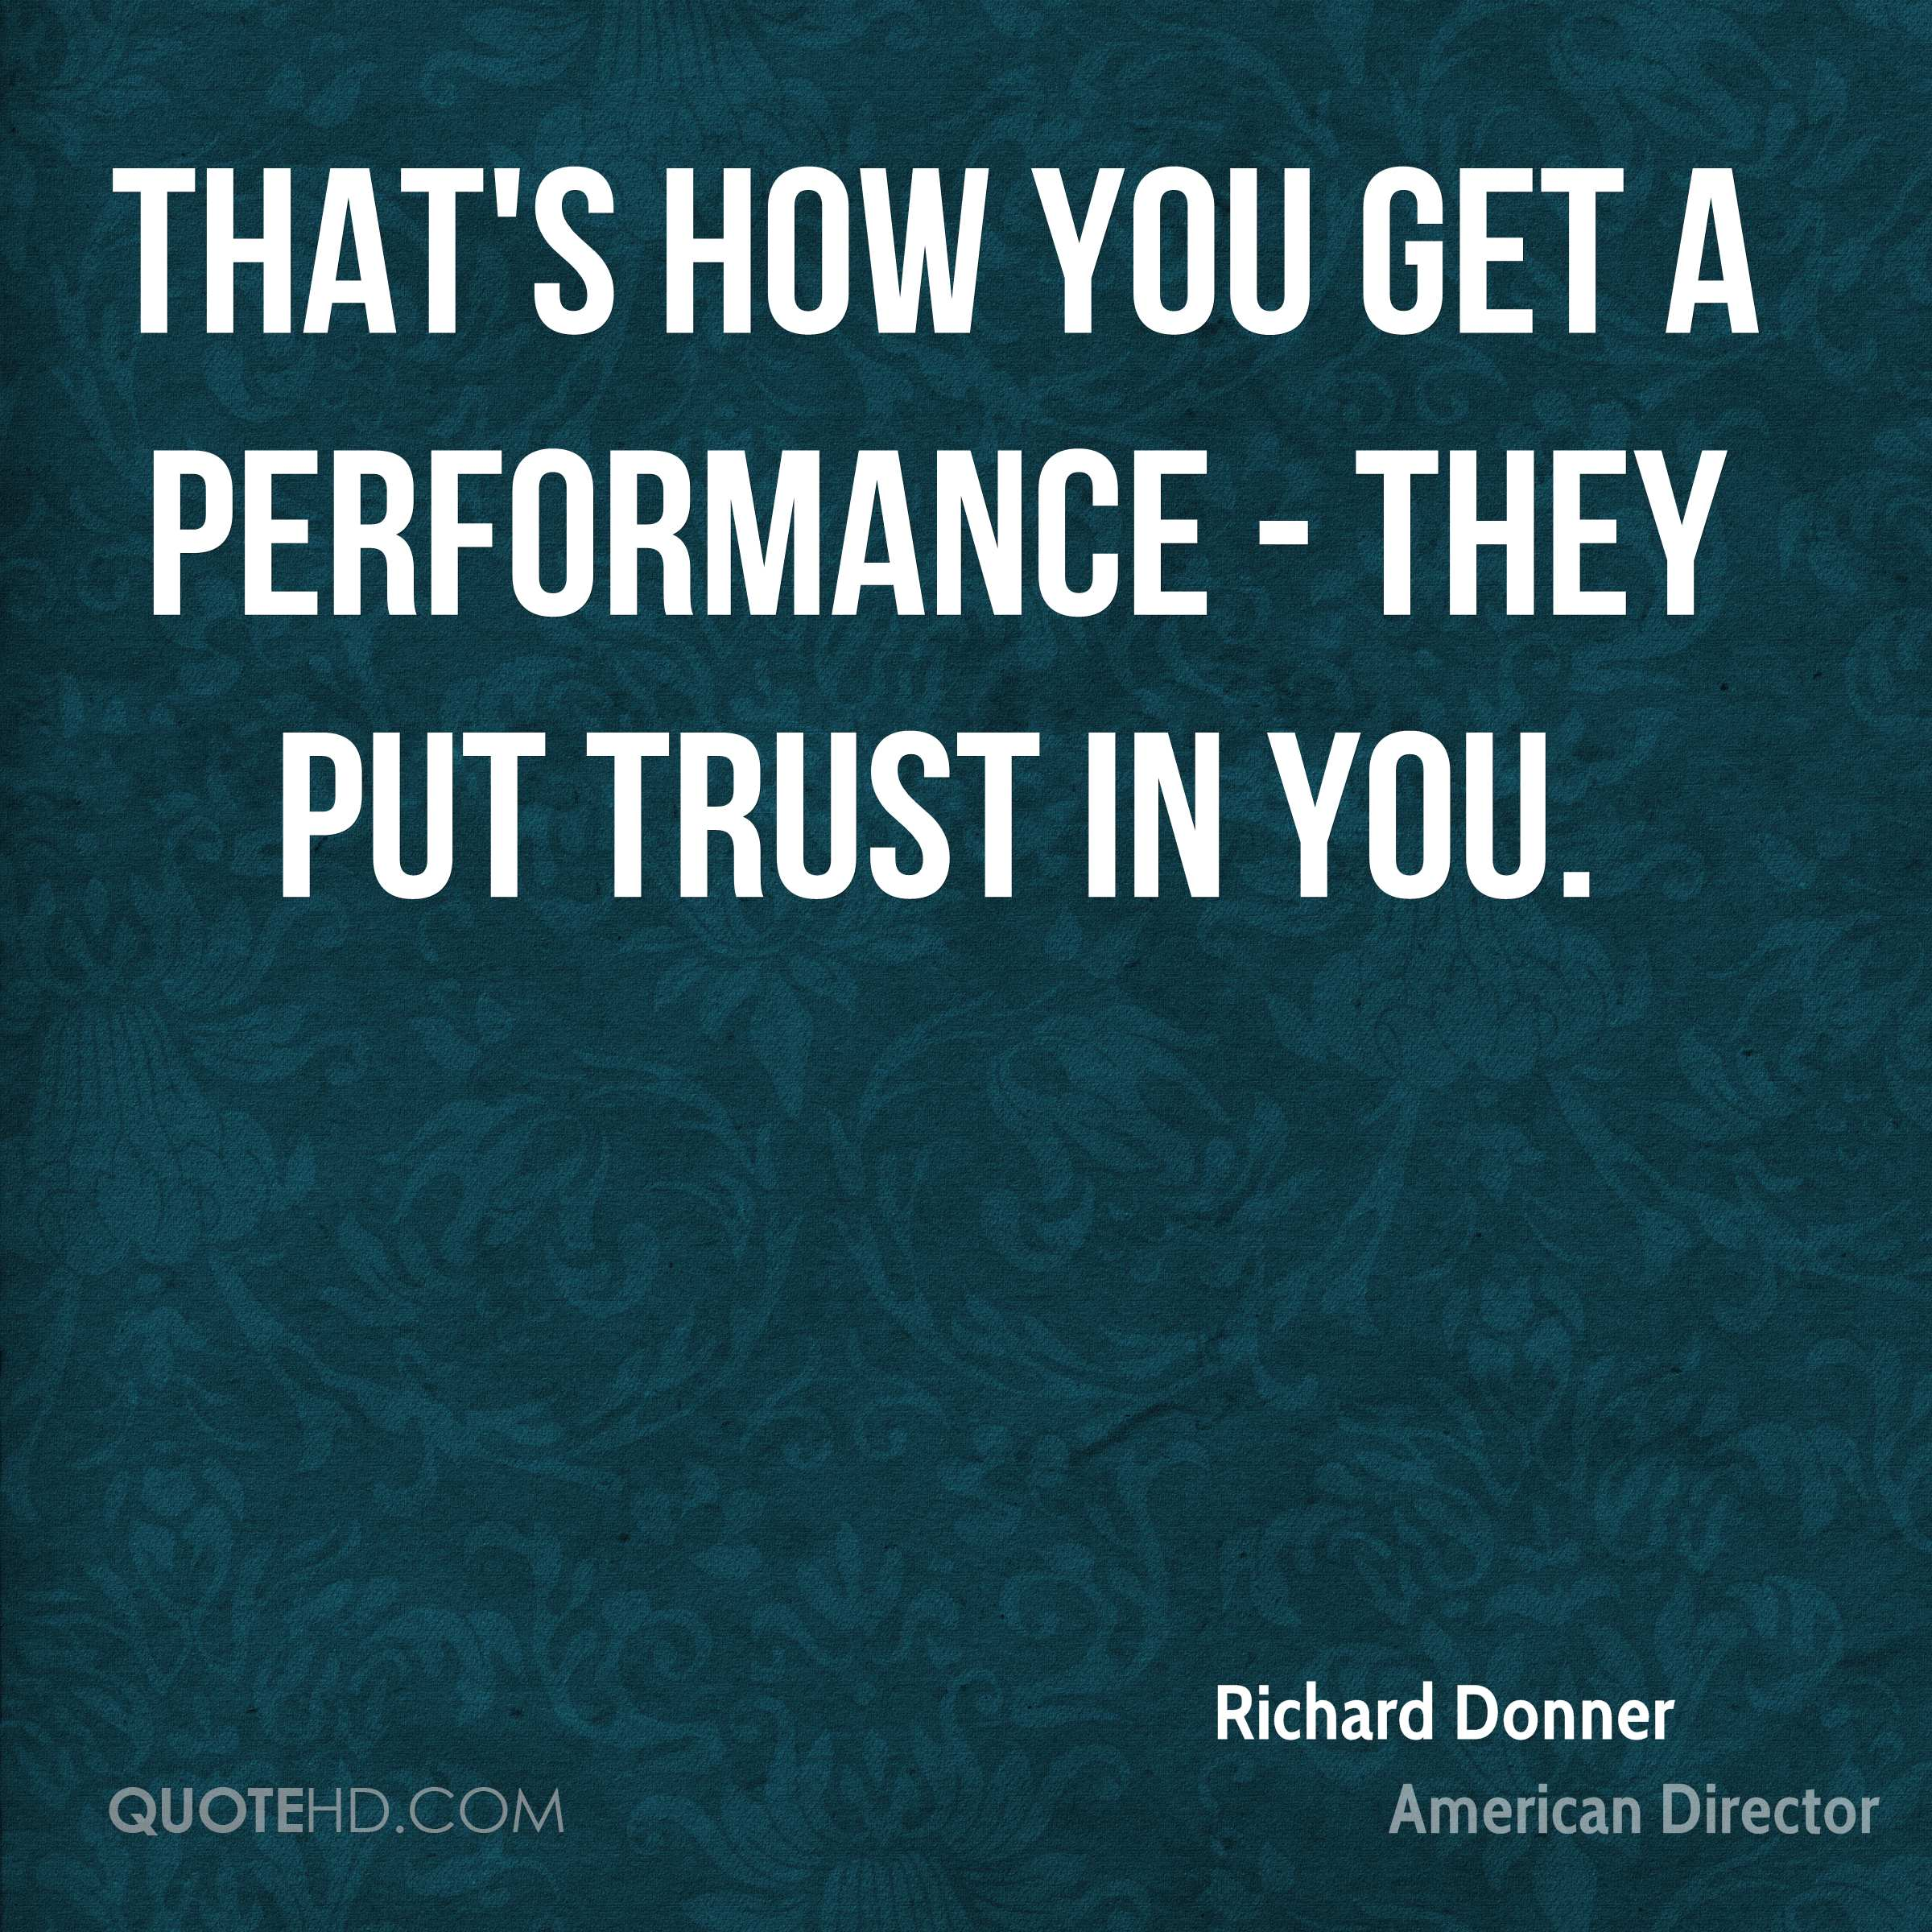 That's how you get a performance - they put trust in you.